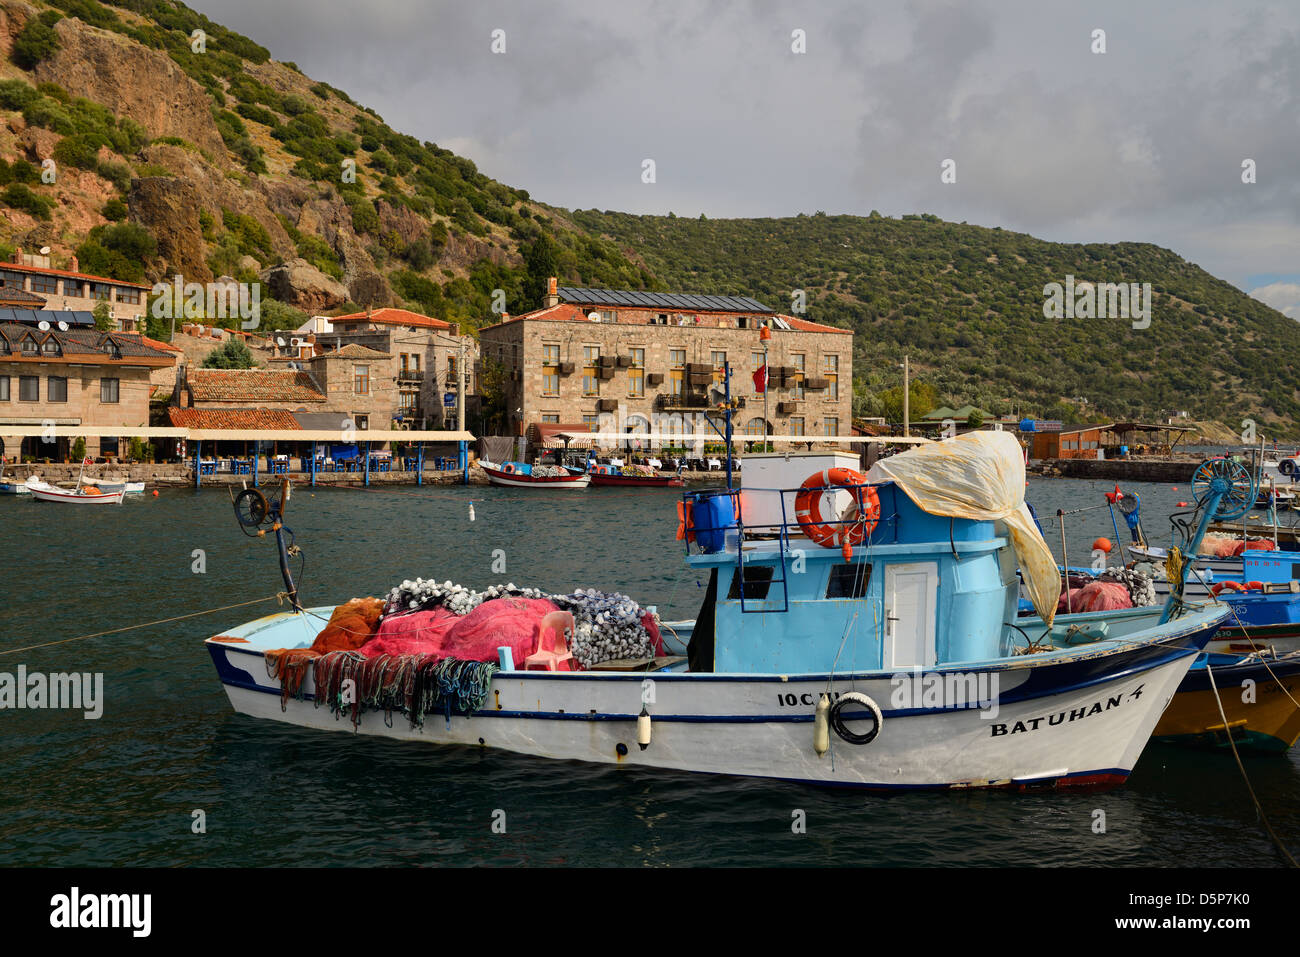 Seaside village hamlet of Assos Iskele or Behram Turkey with boats hotels and restaurants on the Aegean Sea - Stock Image